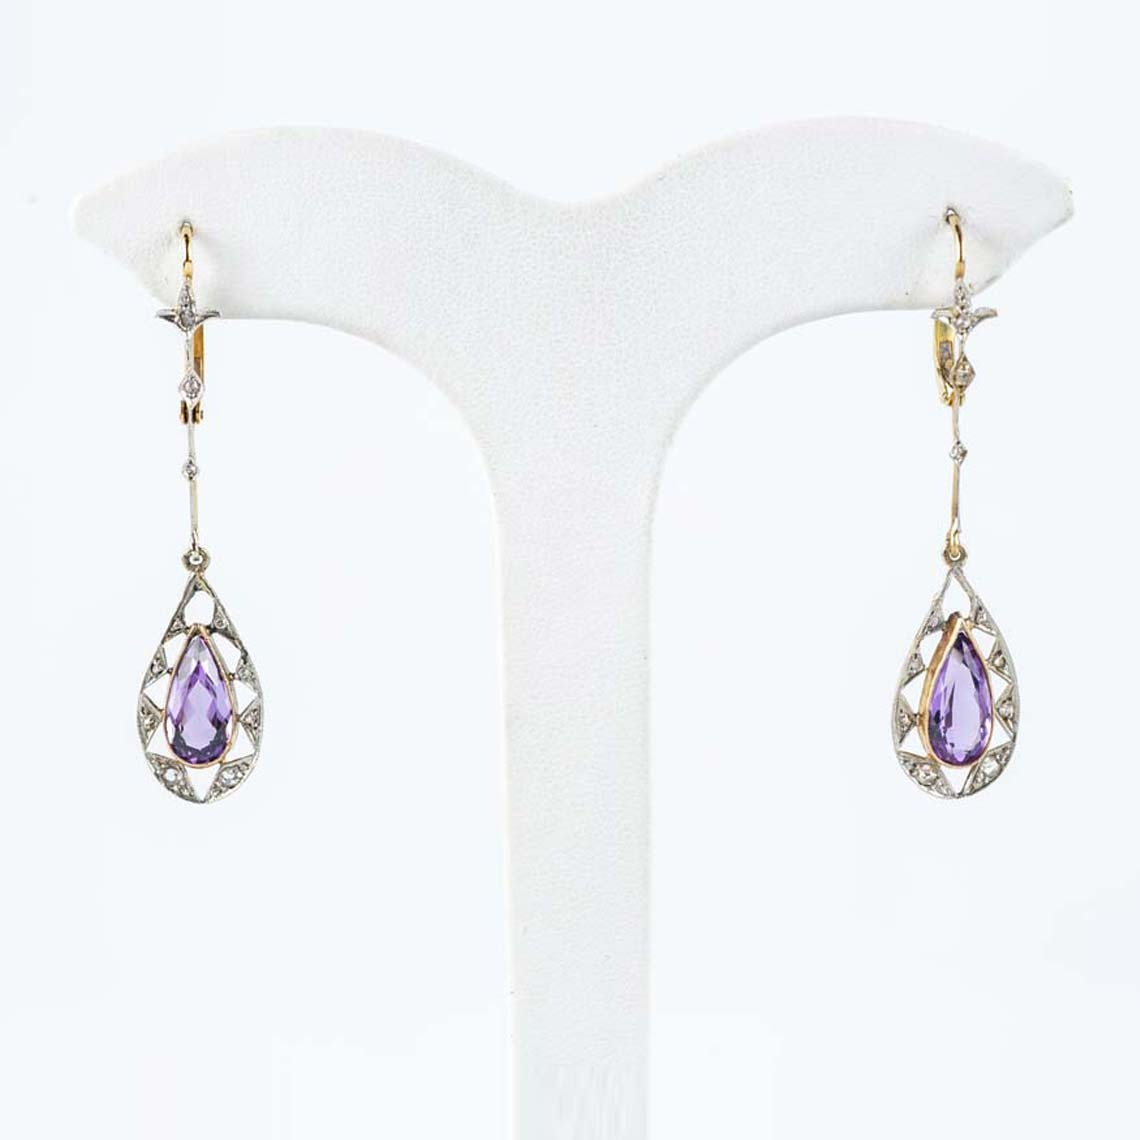 Edwardian amethyst diamond earrings